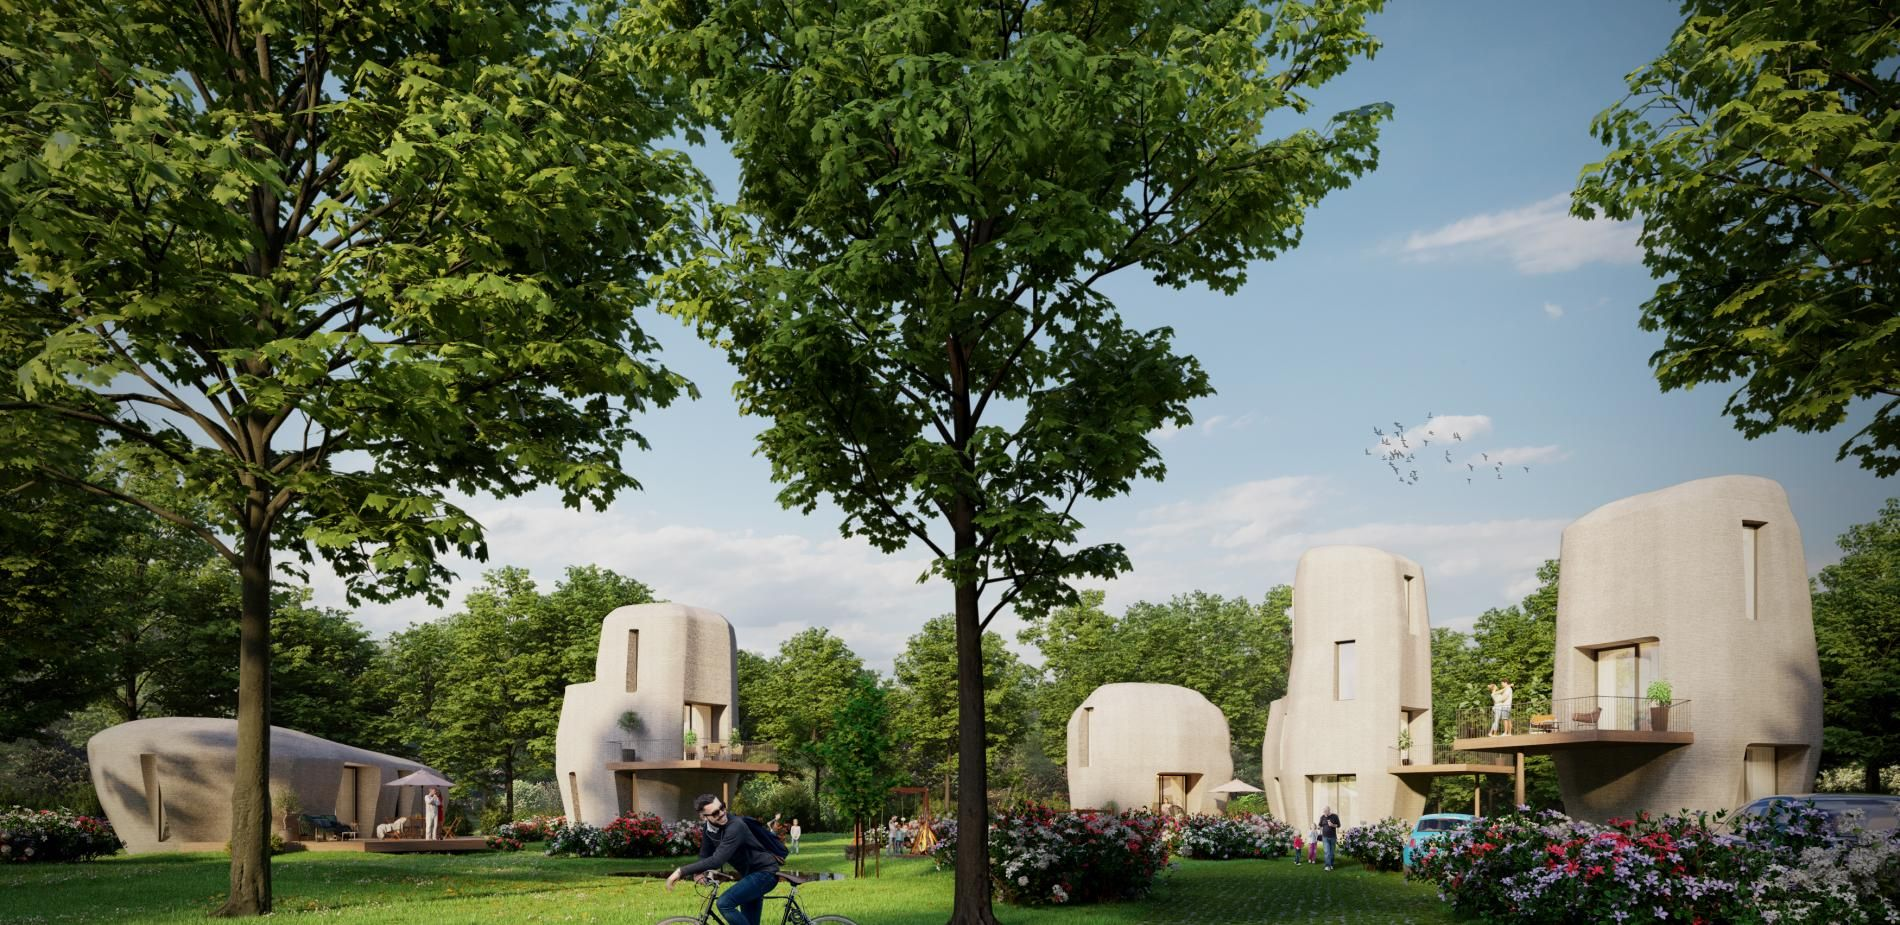 Project Mileston, with its 5 boulder-shaped houses in Eindhoven, Netherlands, stands as the world's first commercial housing project entirely based on 3D printing.